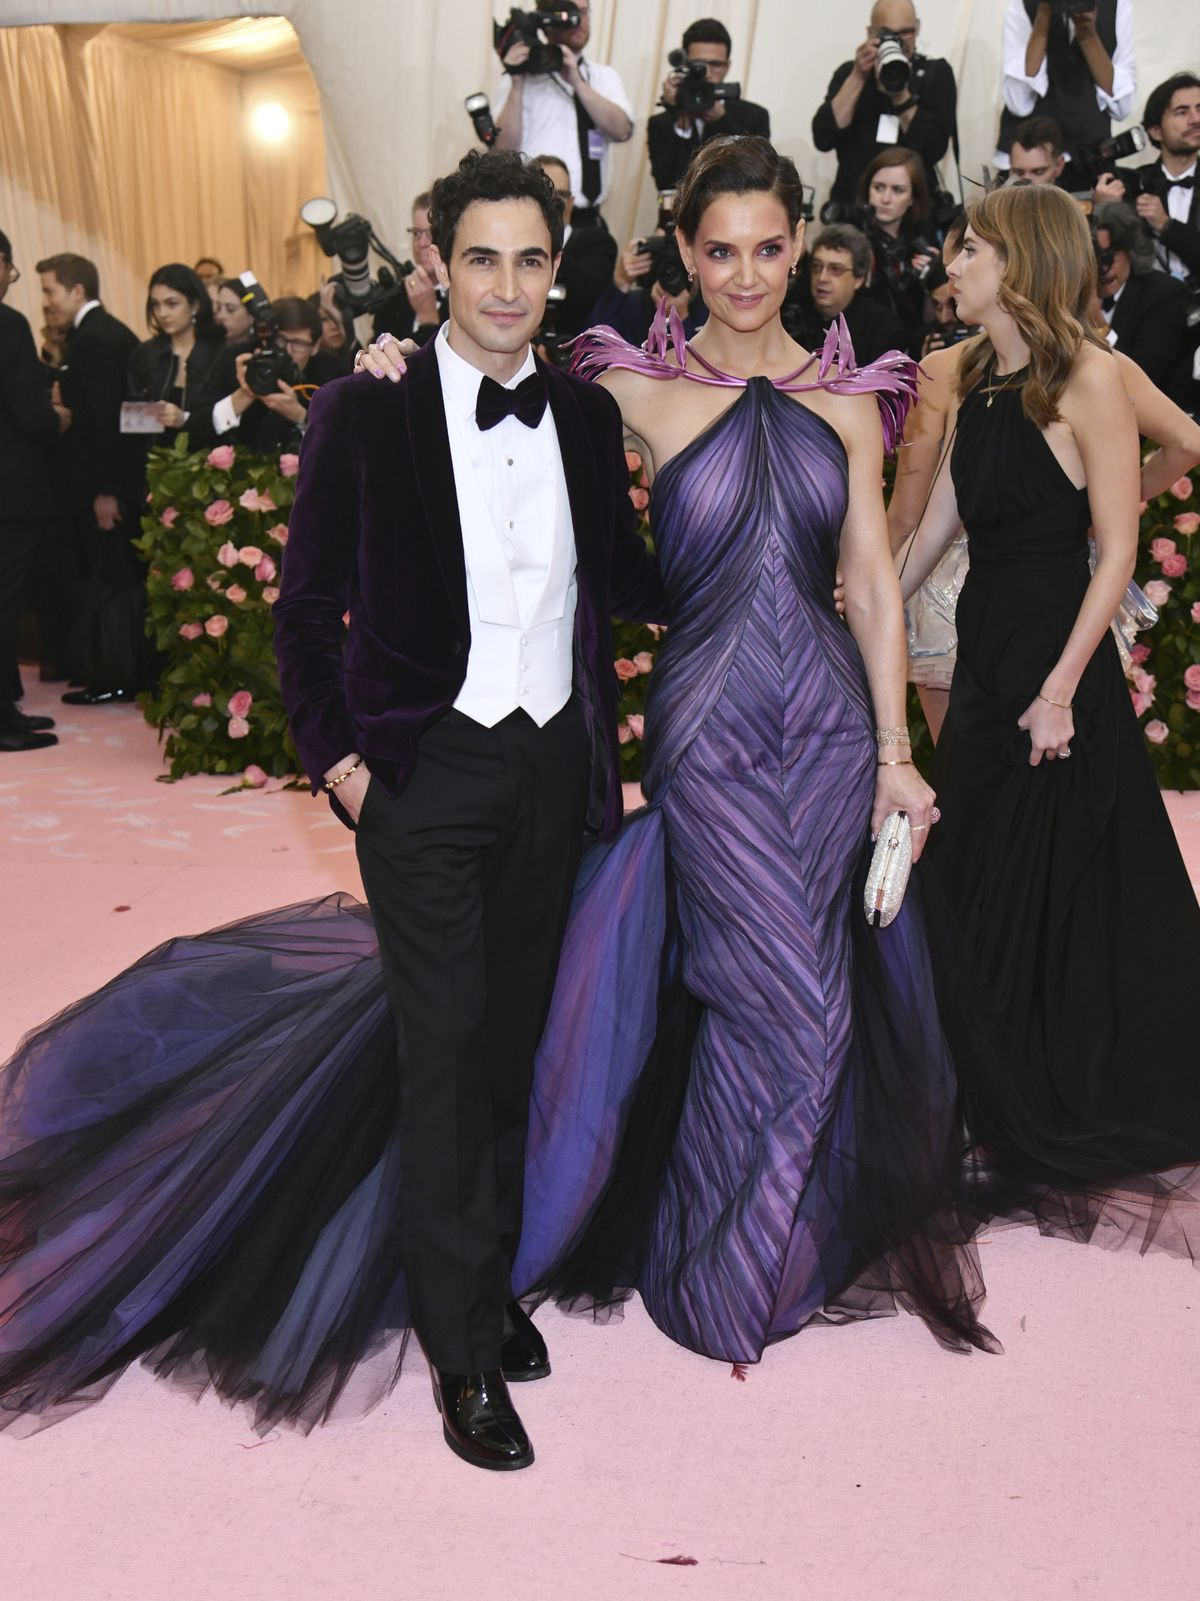 Designer Zac Posen, left, and Katie Holmes attend The Metropolitan Museum of Art's Costume Institute benefit gala in May.